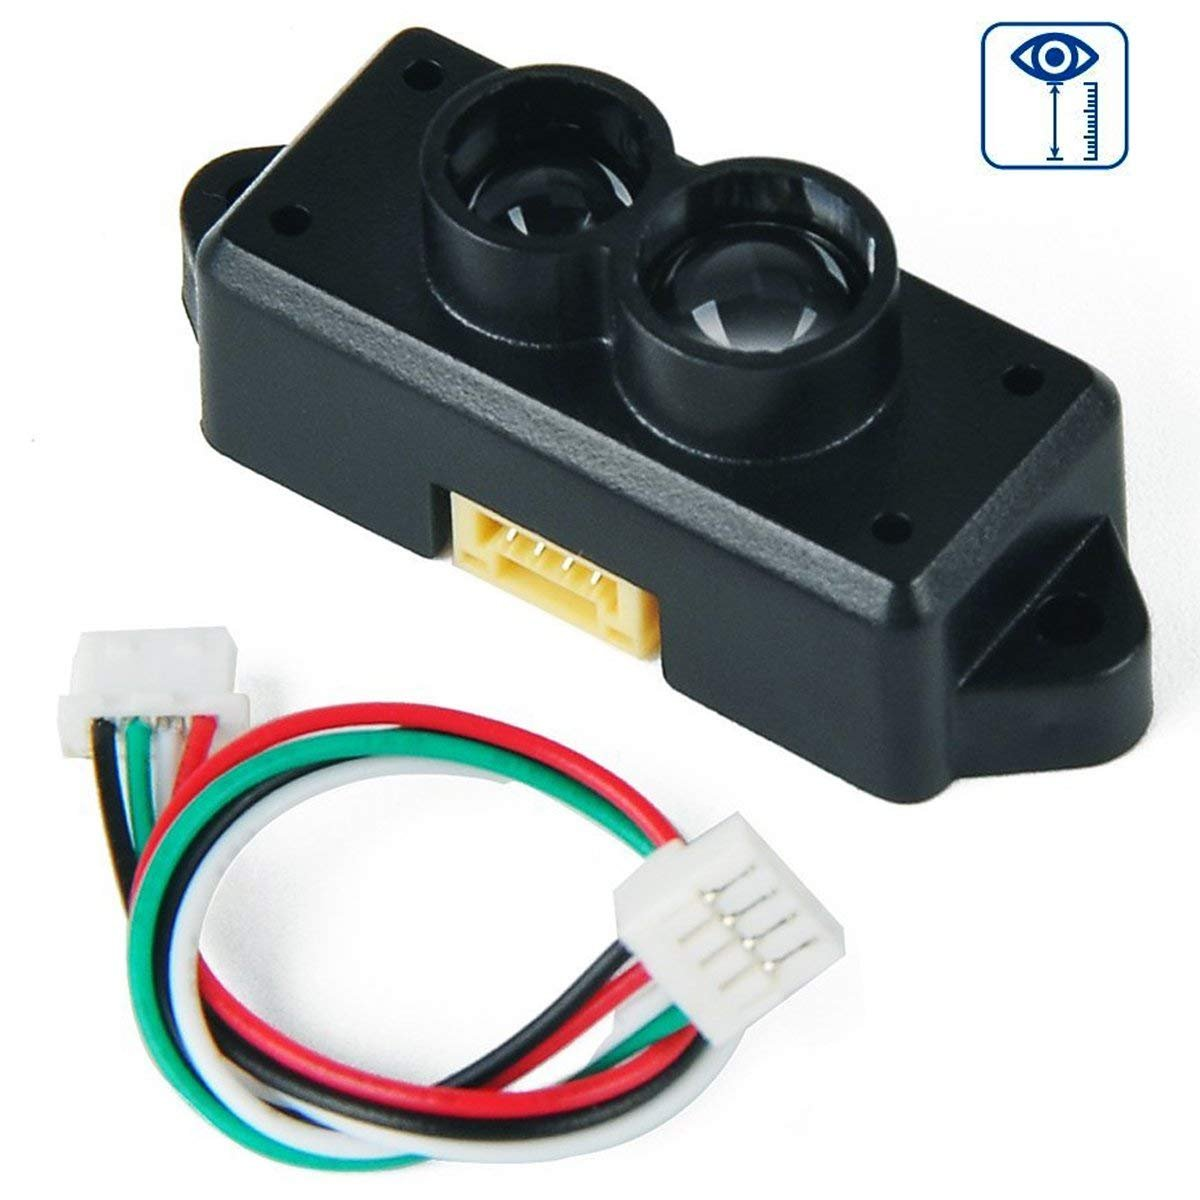 MakerHawk Infrared Distance Sensor Module with Cable include Infrared Emitting Diode and Signal Processing Circuit, Measuring Range 100 to 550 CM  for Projector and Amusement Equipment